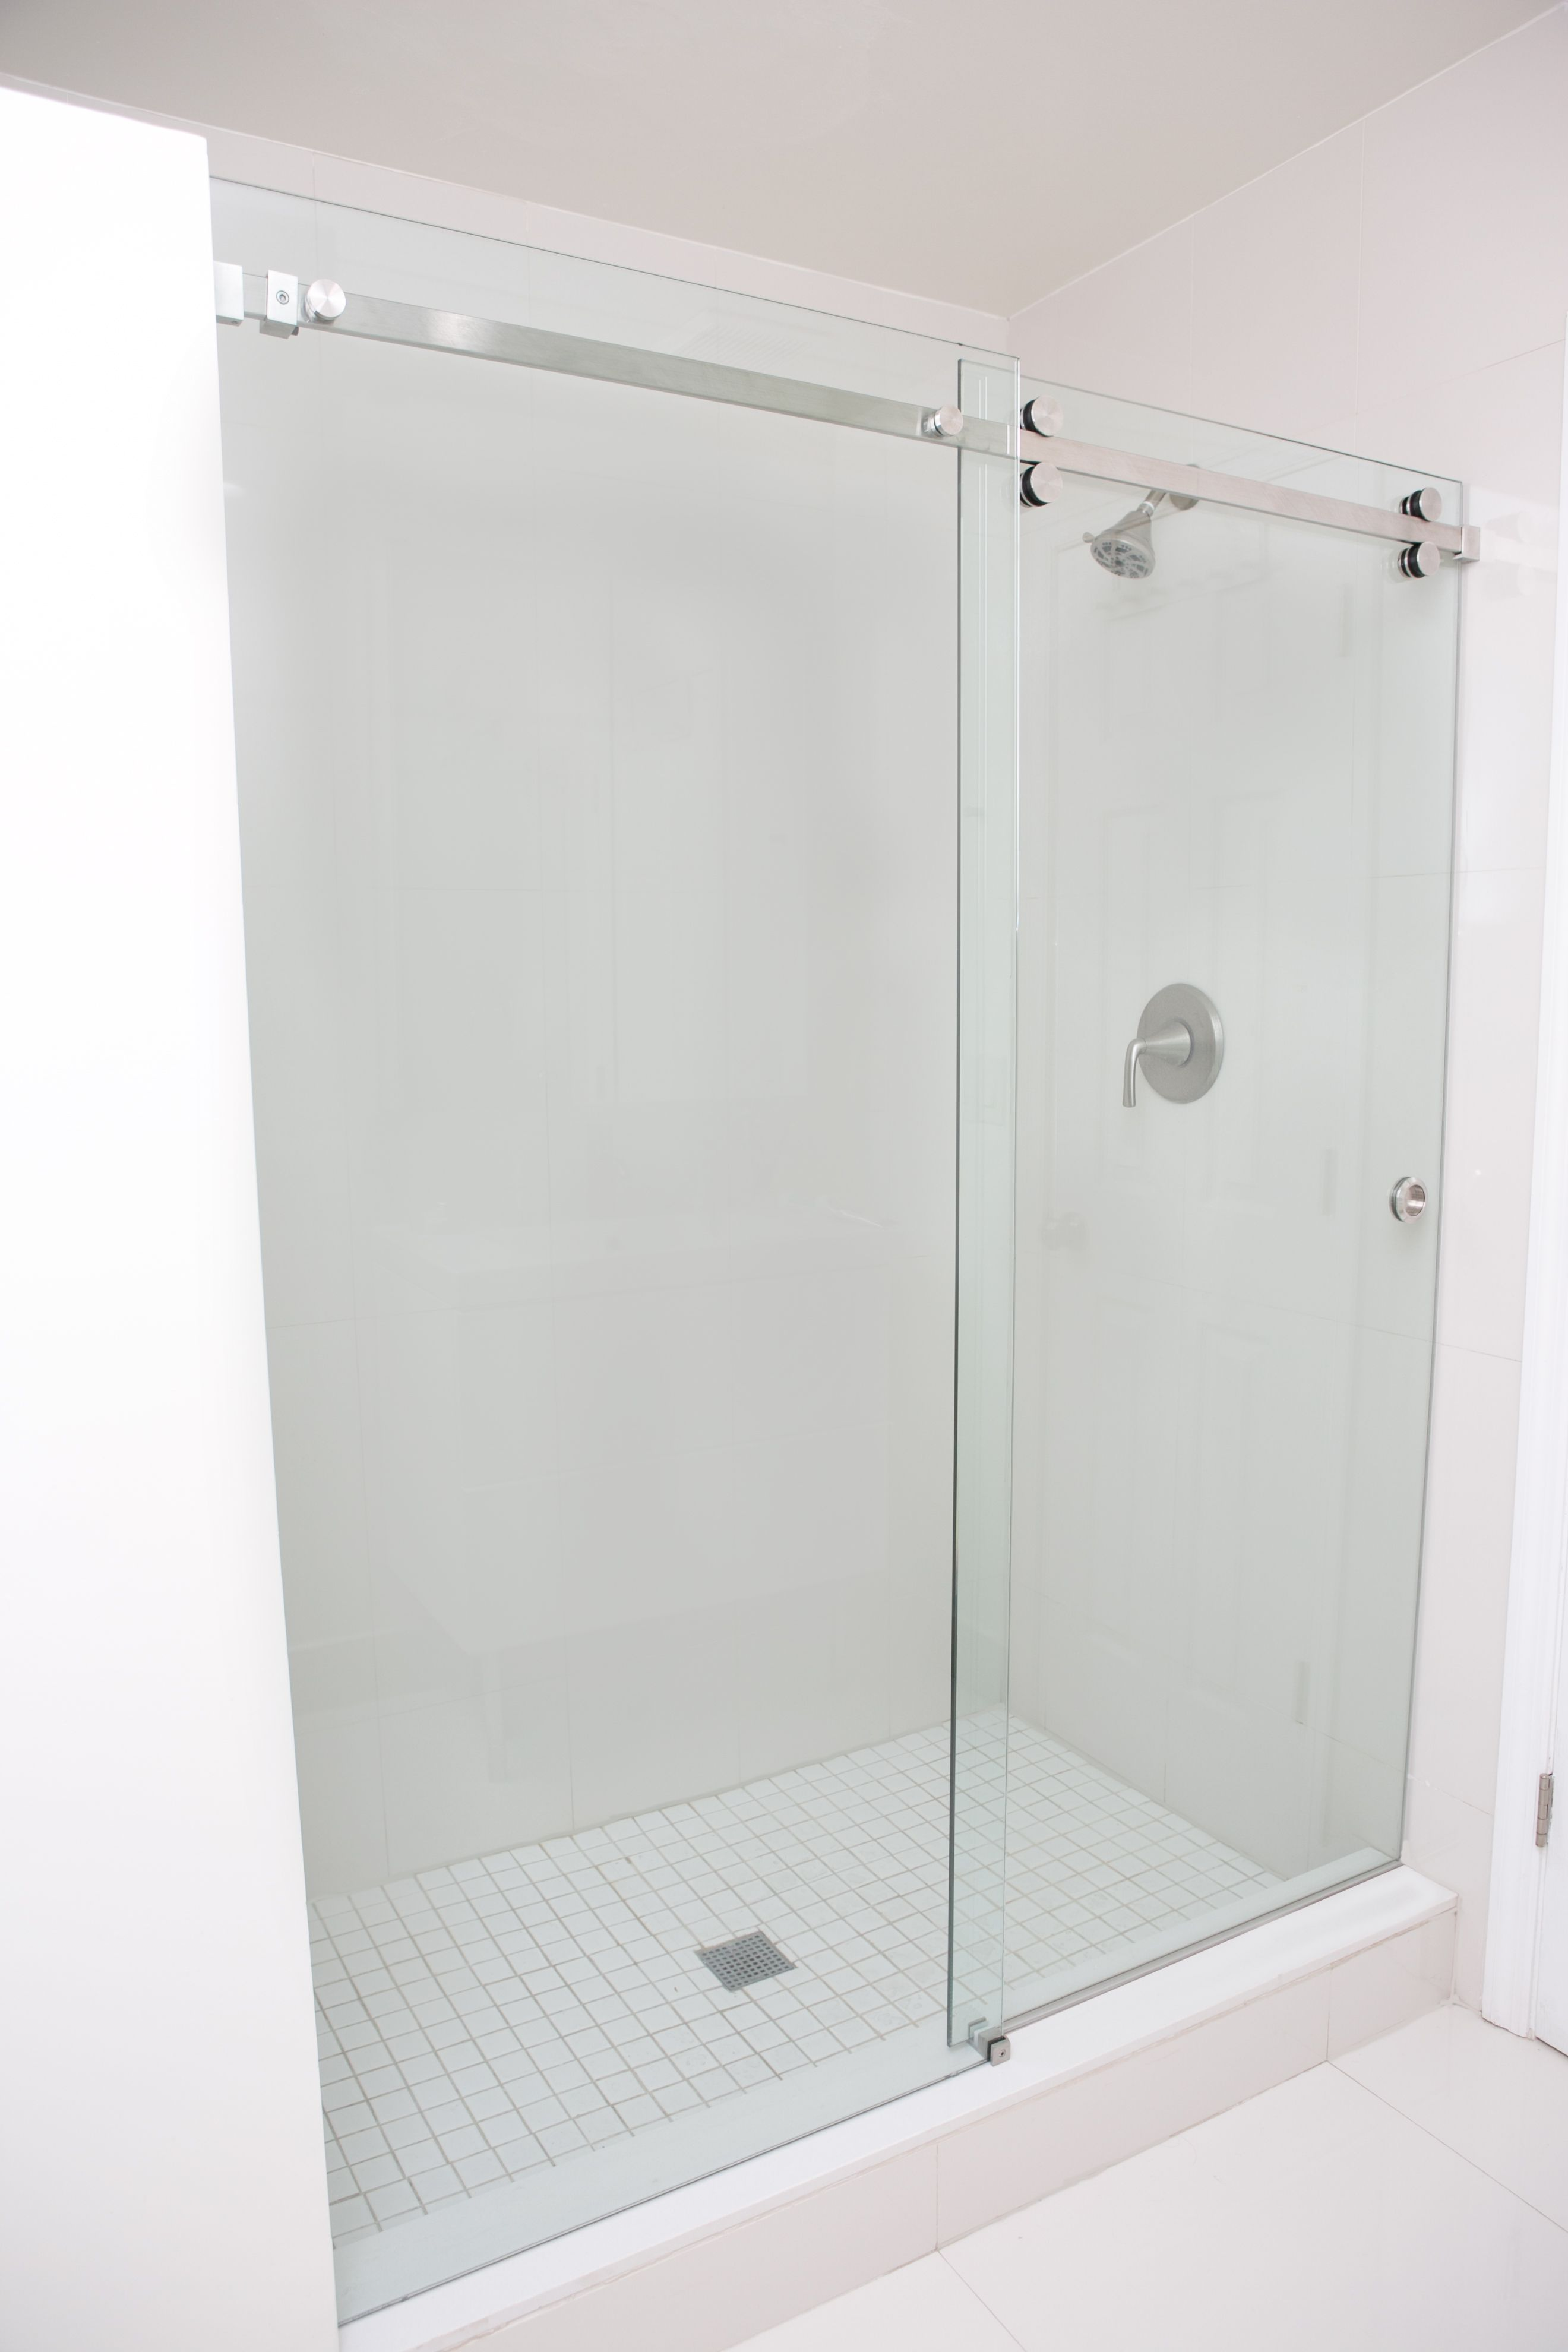 Sebastian Slider By The Original Frameless Shower Doors